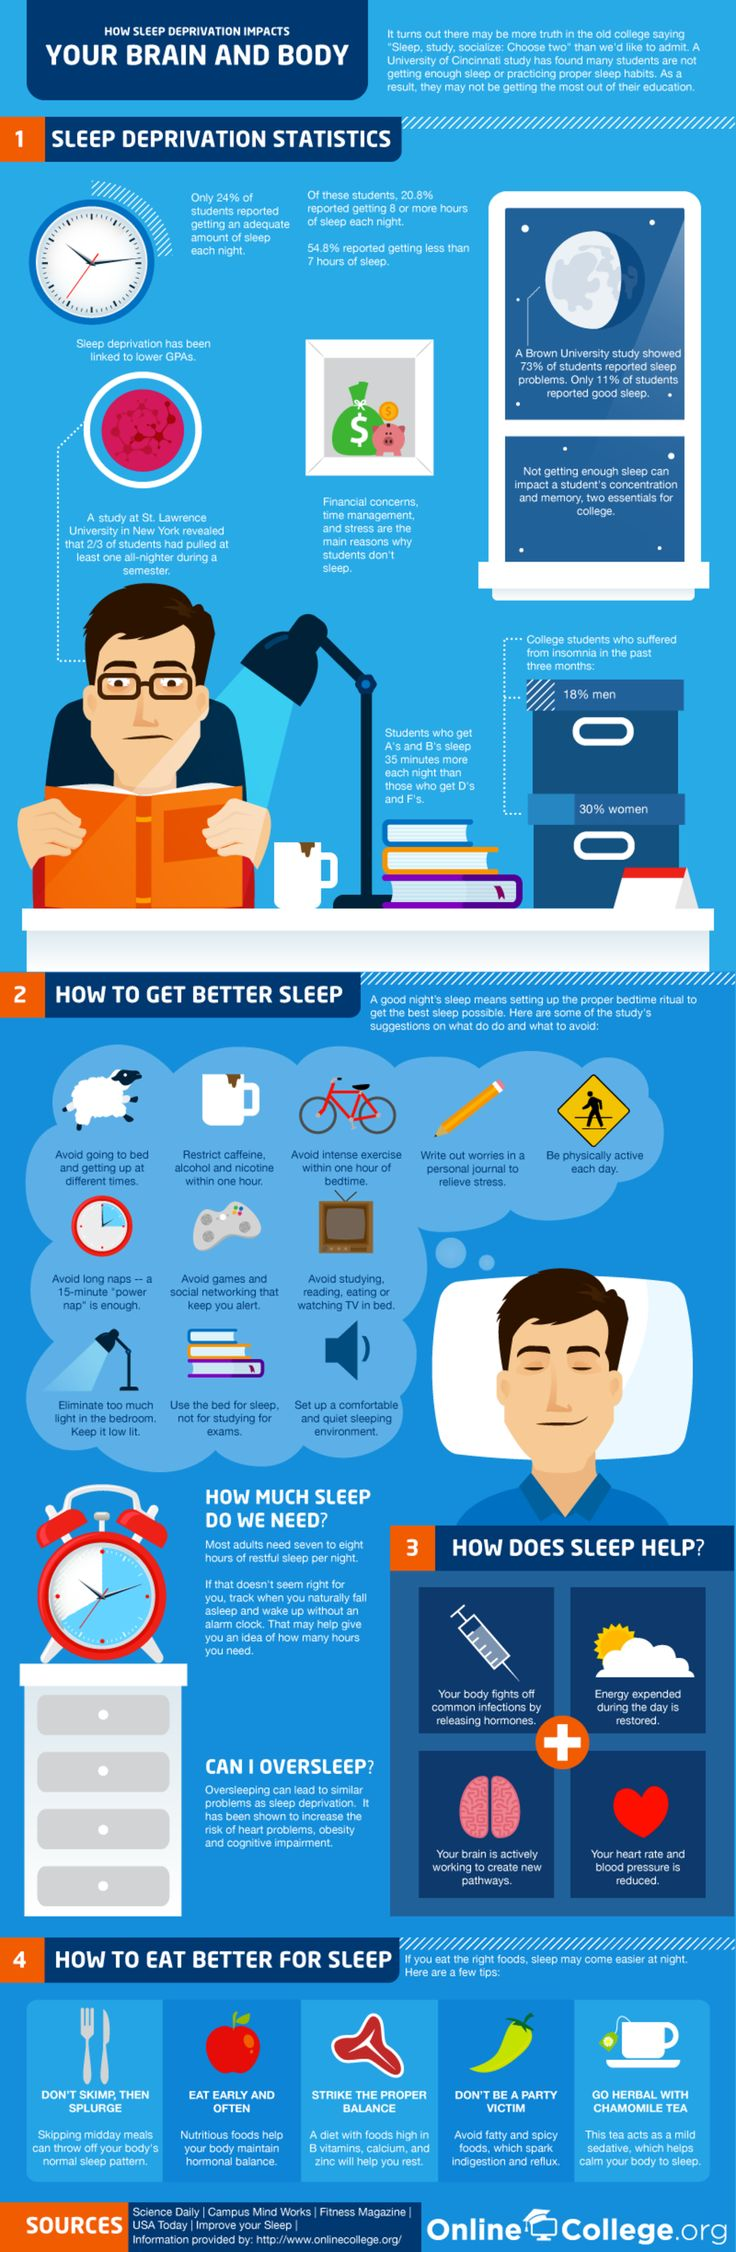 best sleep or resting is not wasted time images on pinterest